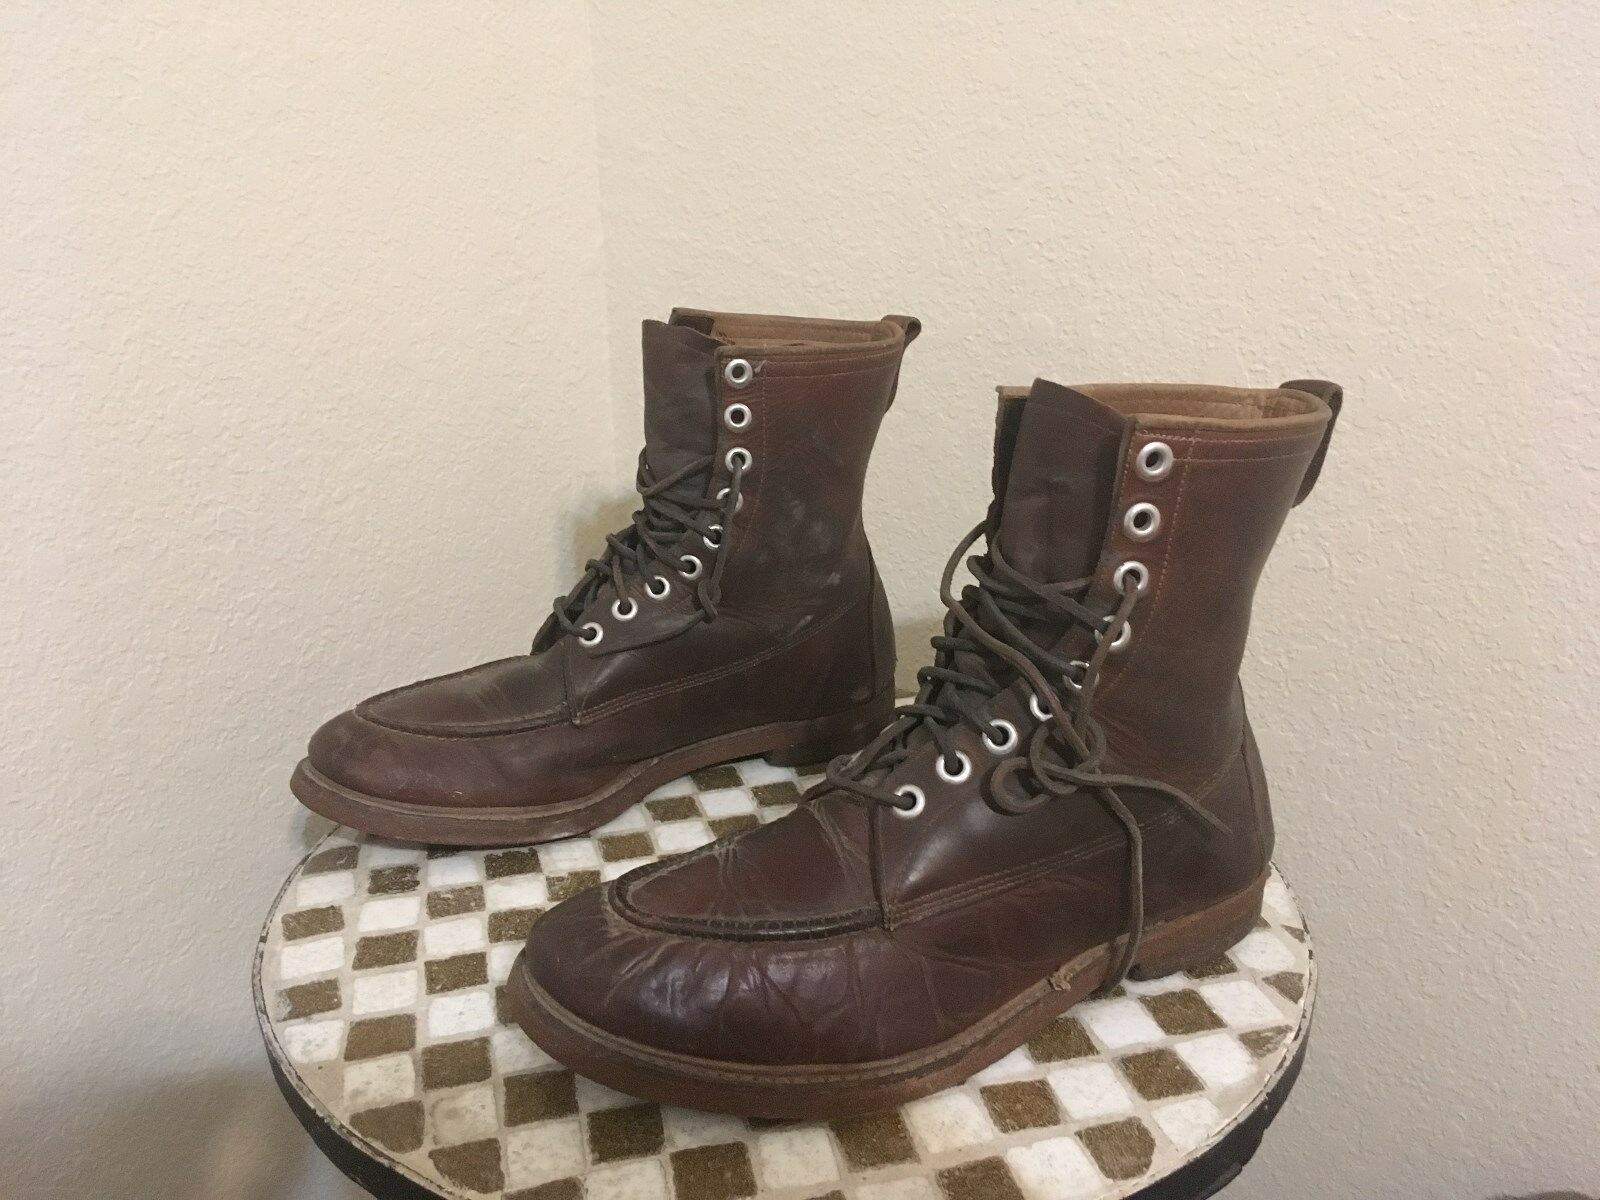 VINTAGE USA DISTRESSED PACKER WORK CHORE TRUCKER BOOTS  12 M